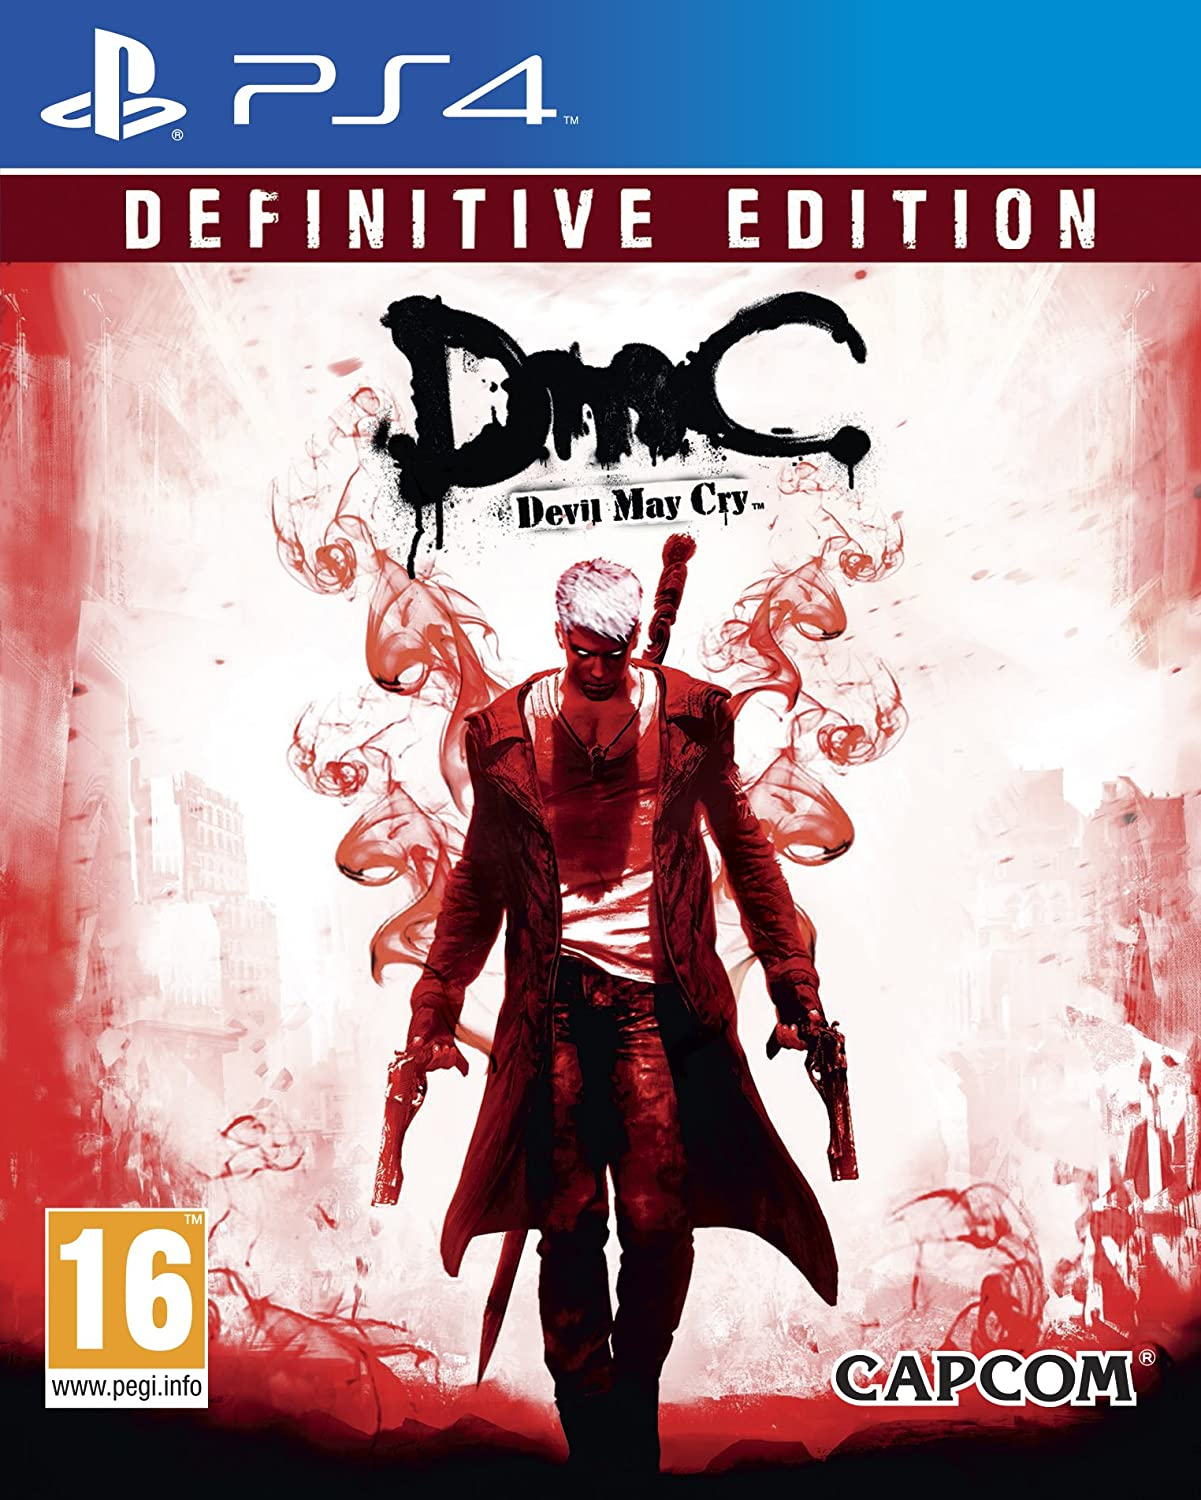 Kết quả hình ảnh cho DmC Devil May Cry Definitive Edition cover ps4